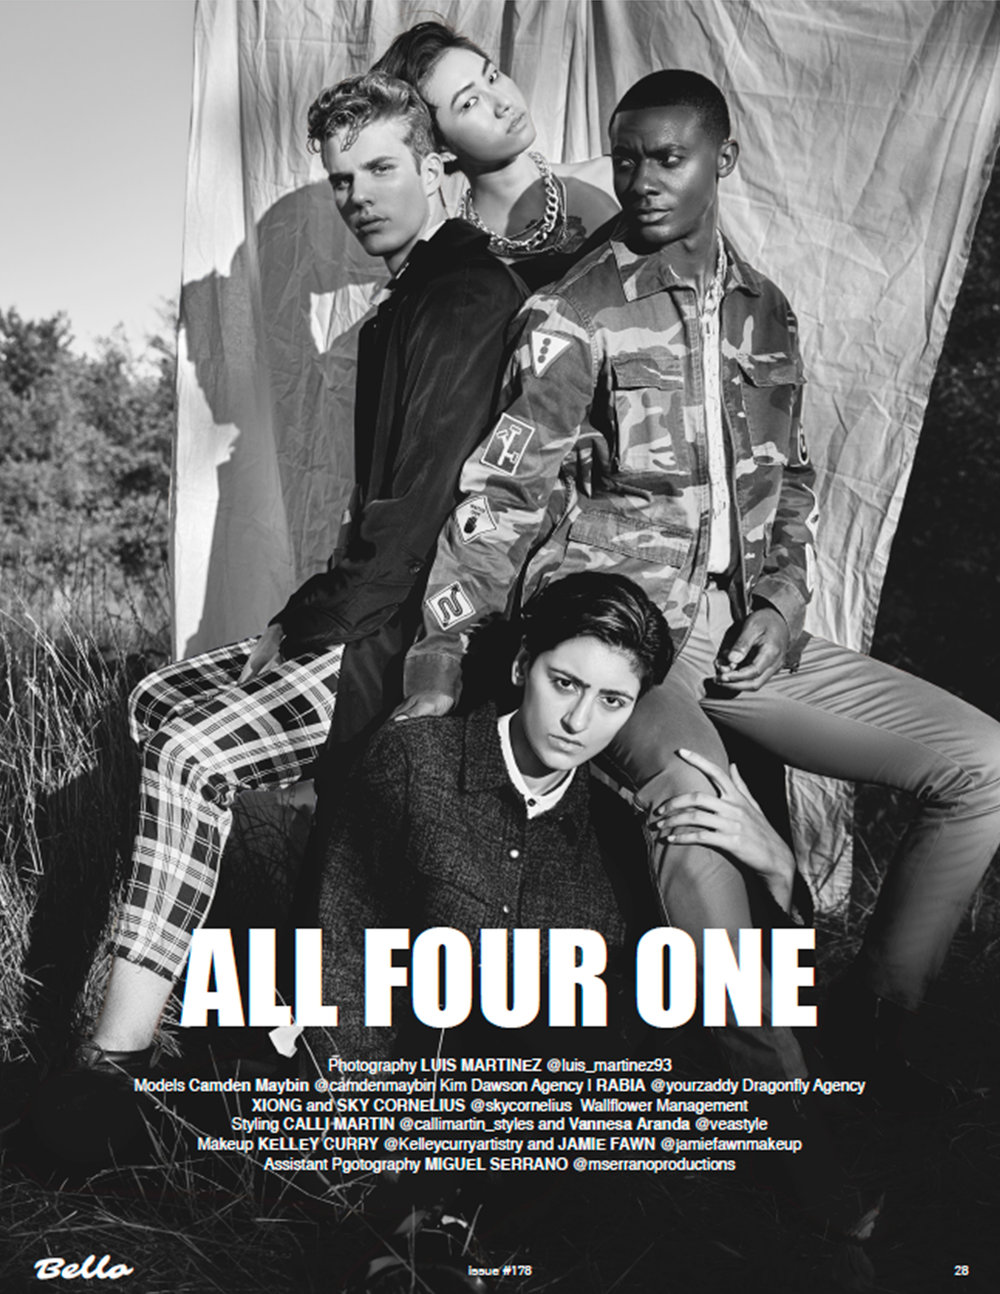 All Four One - Exclusive Editorial for Bello MagazinePhoto and Retouch: Luis MartinezStyling: Calli Martin and Vanessa ArandaHMUA: Kelley Curry and Jamie FawnModels: Camden Maybin, Sky Cornelius, Rabia & Emily Xiong.Photo asst: Miguel Serrano